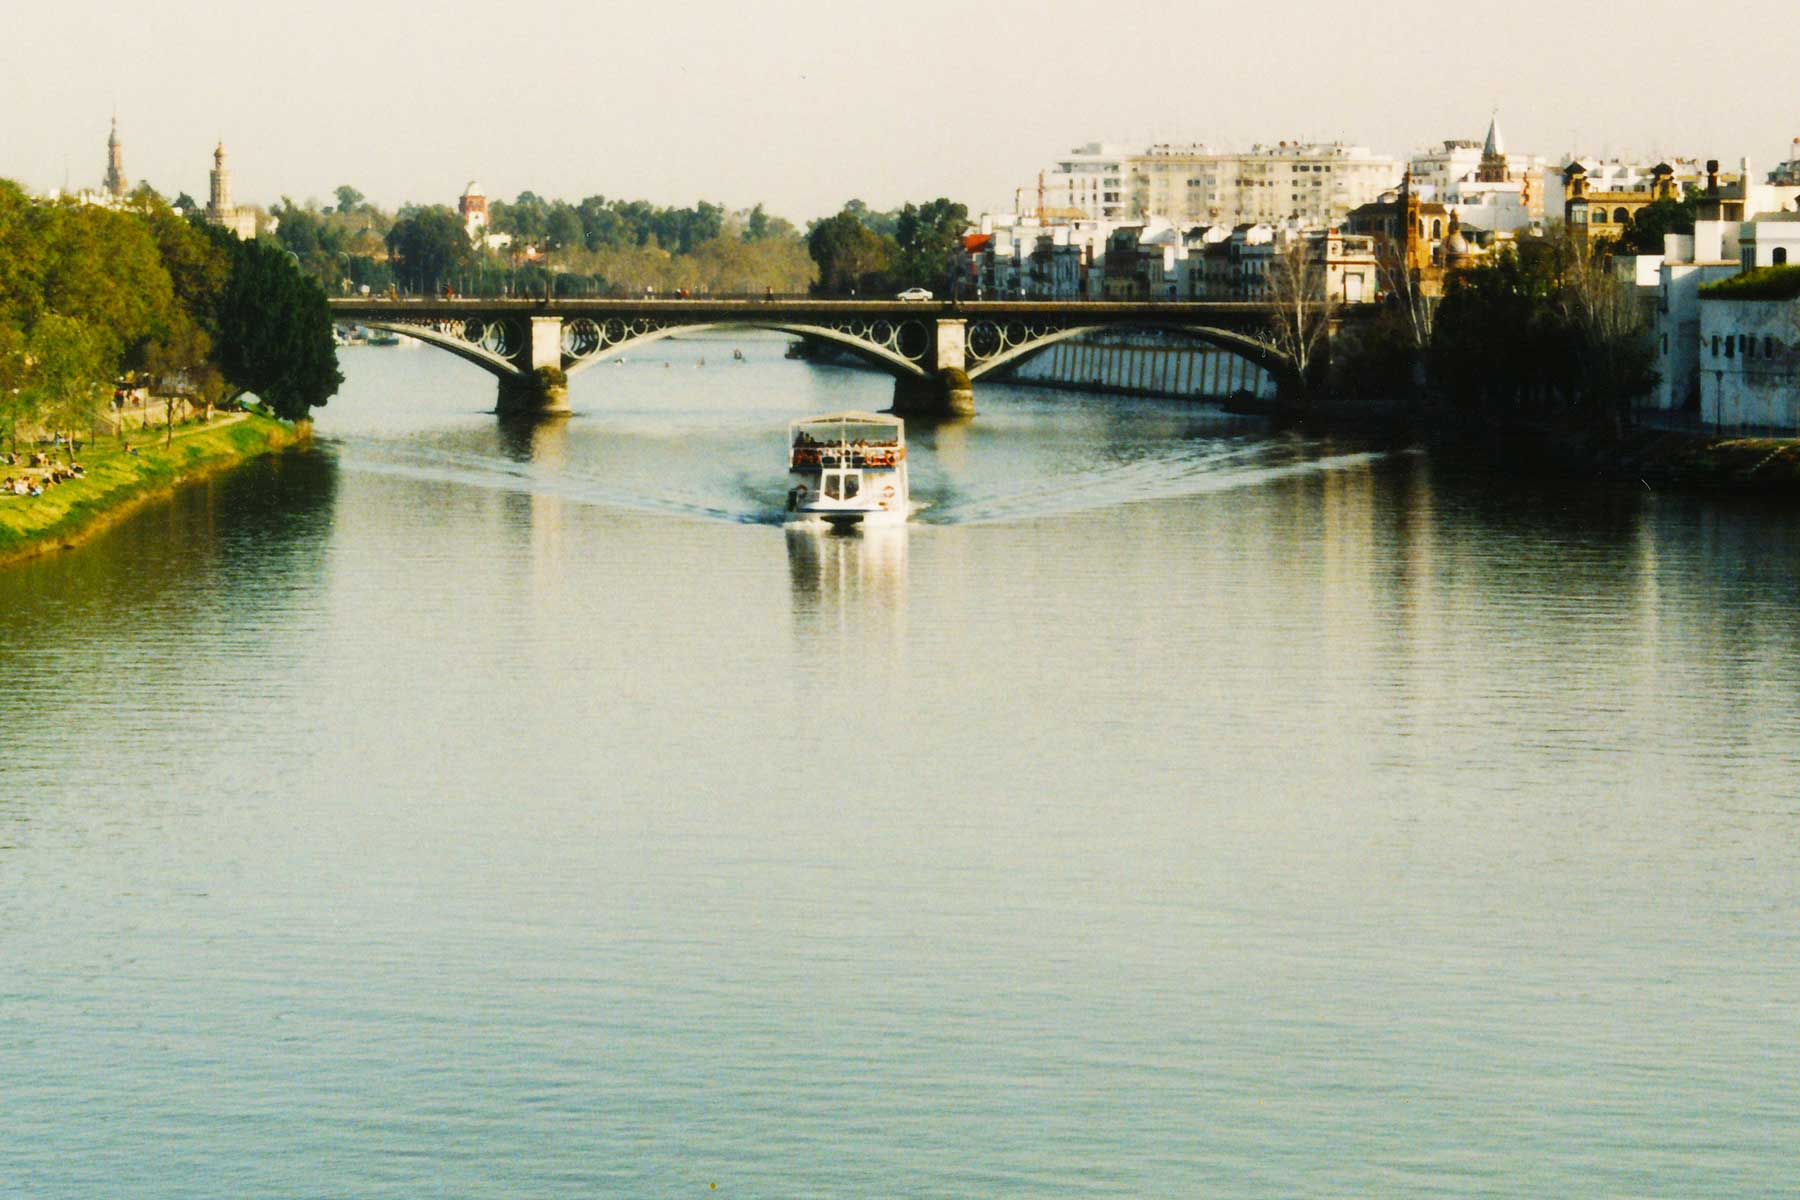 Guadalquivir River - Semester study abroad - Dr Steven Andrew Martin - Spain Photo Journal and Research